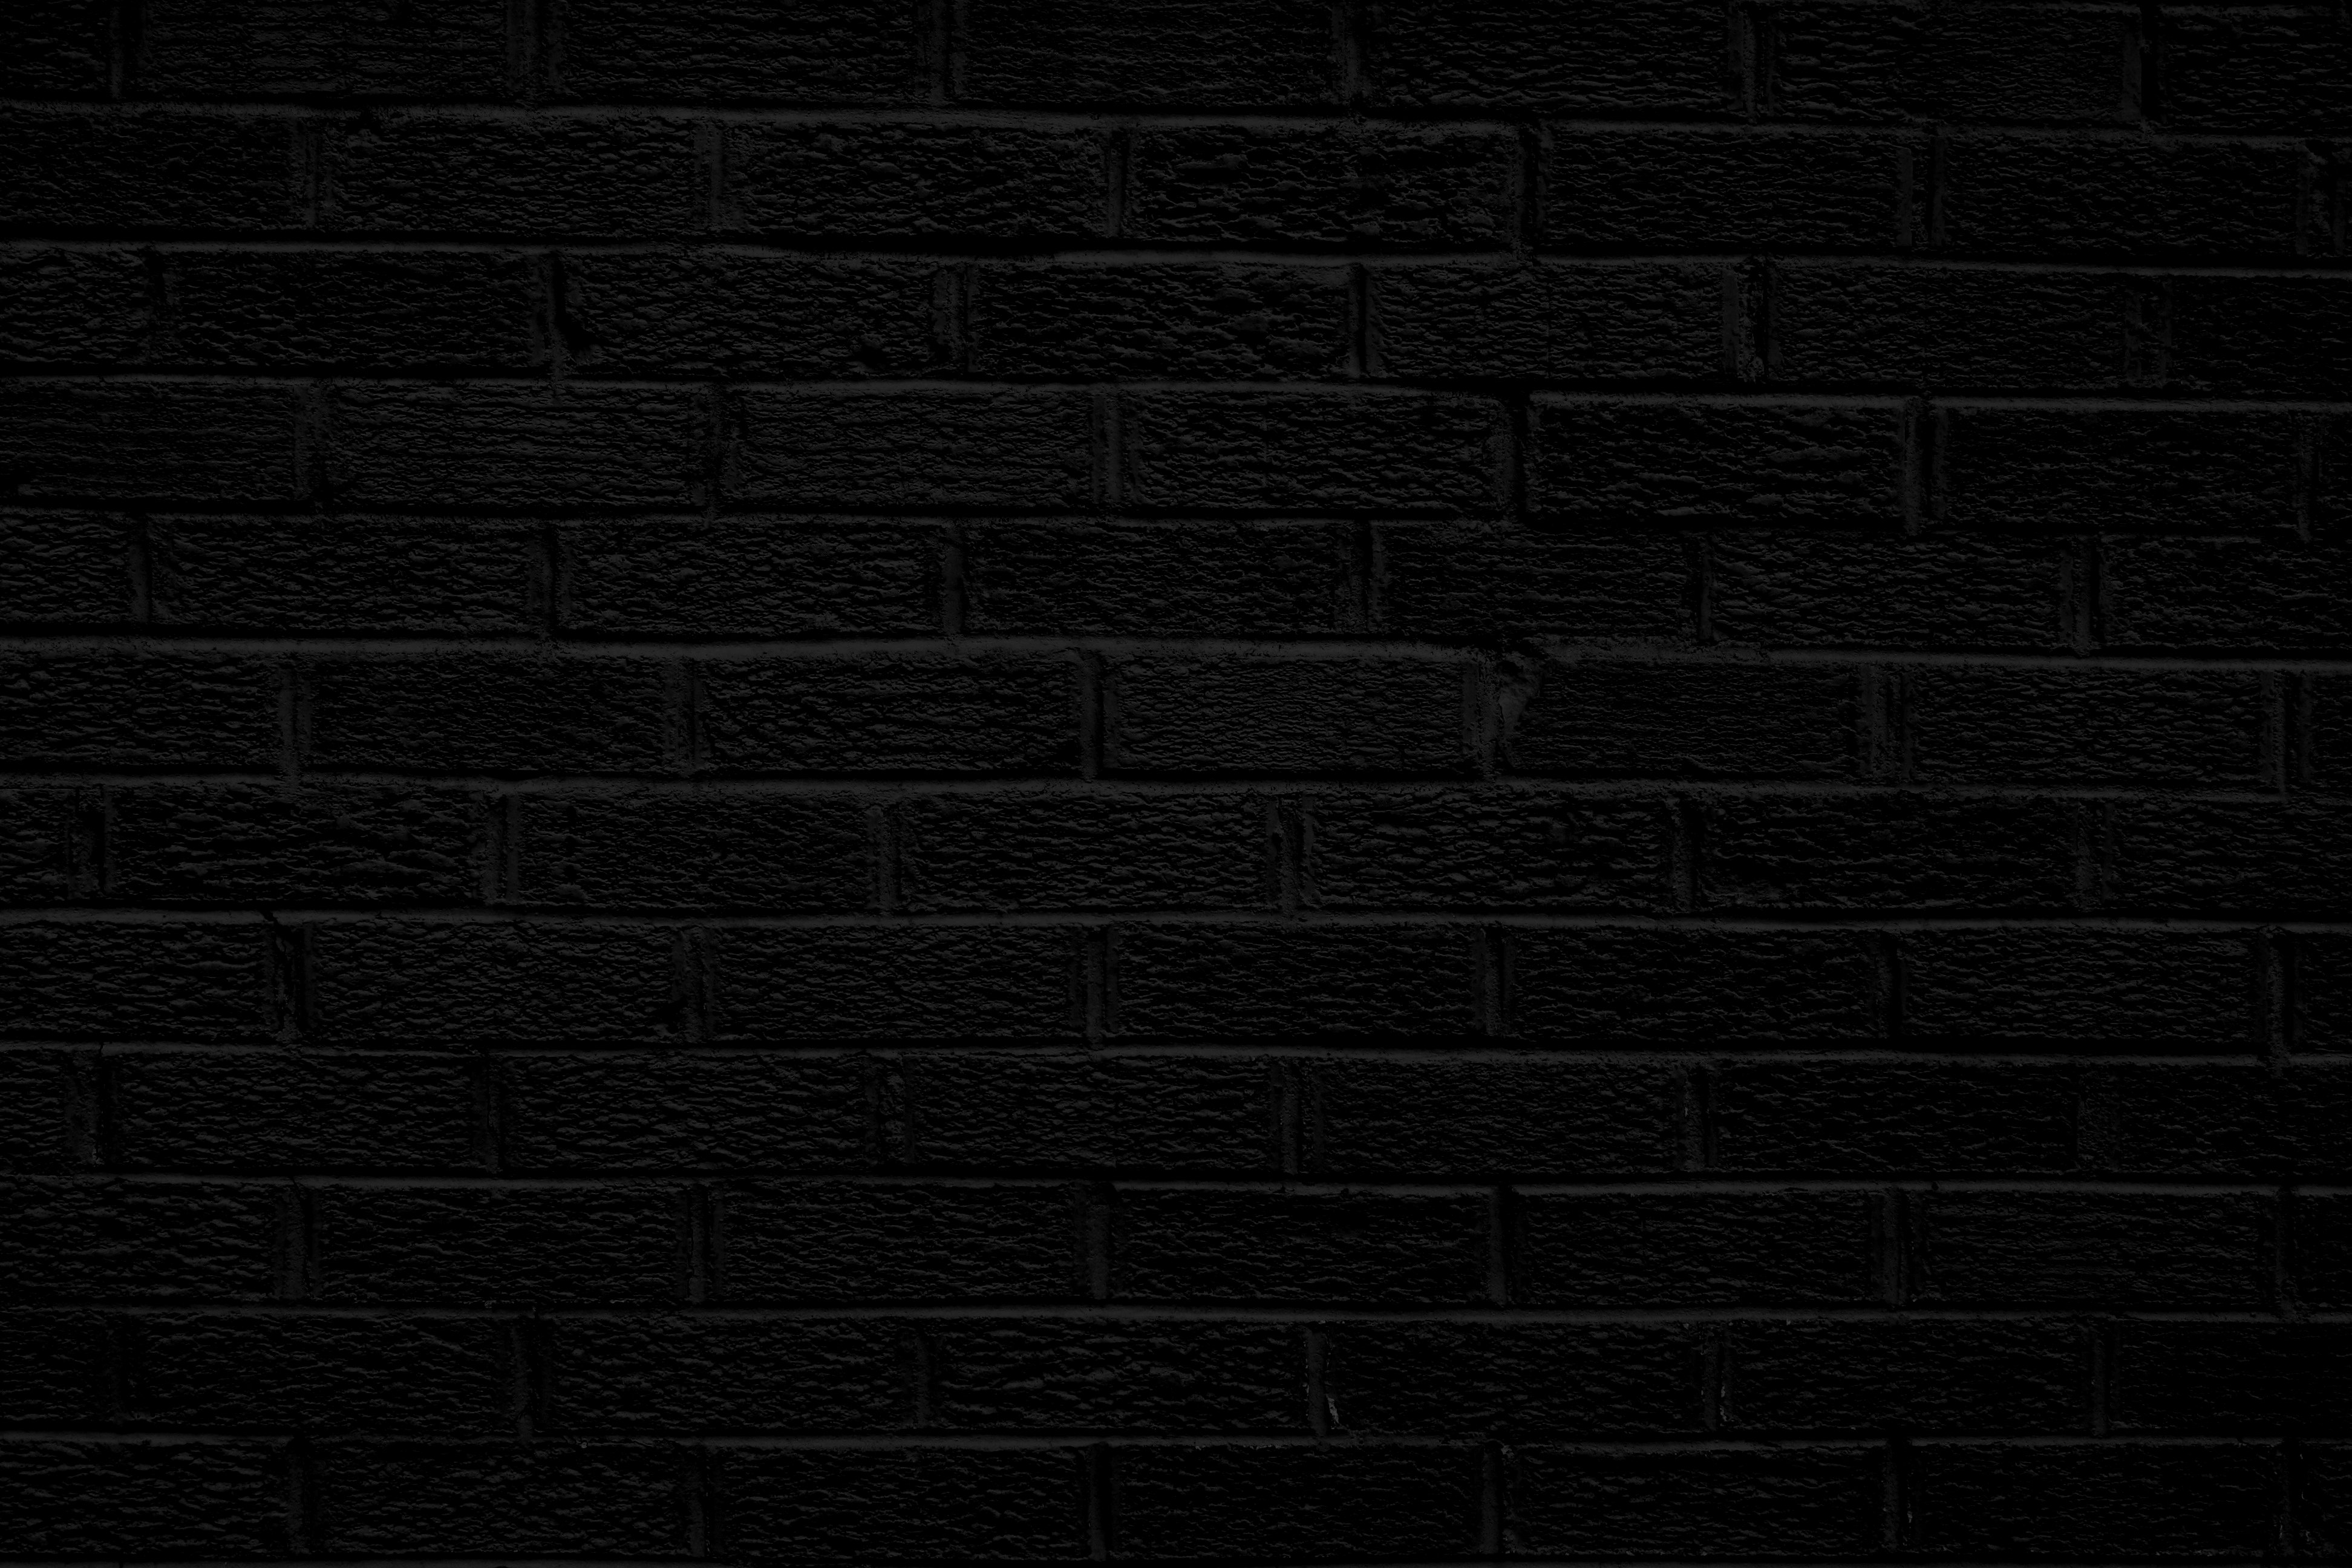 Black Brick Wall Texture High Resolution Photo Dimensions 3888x2592